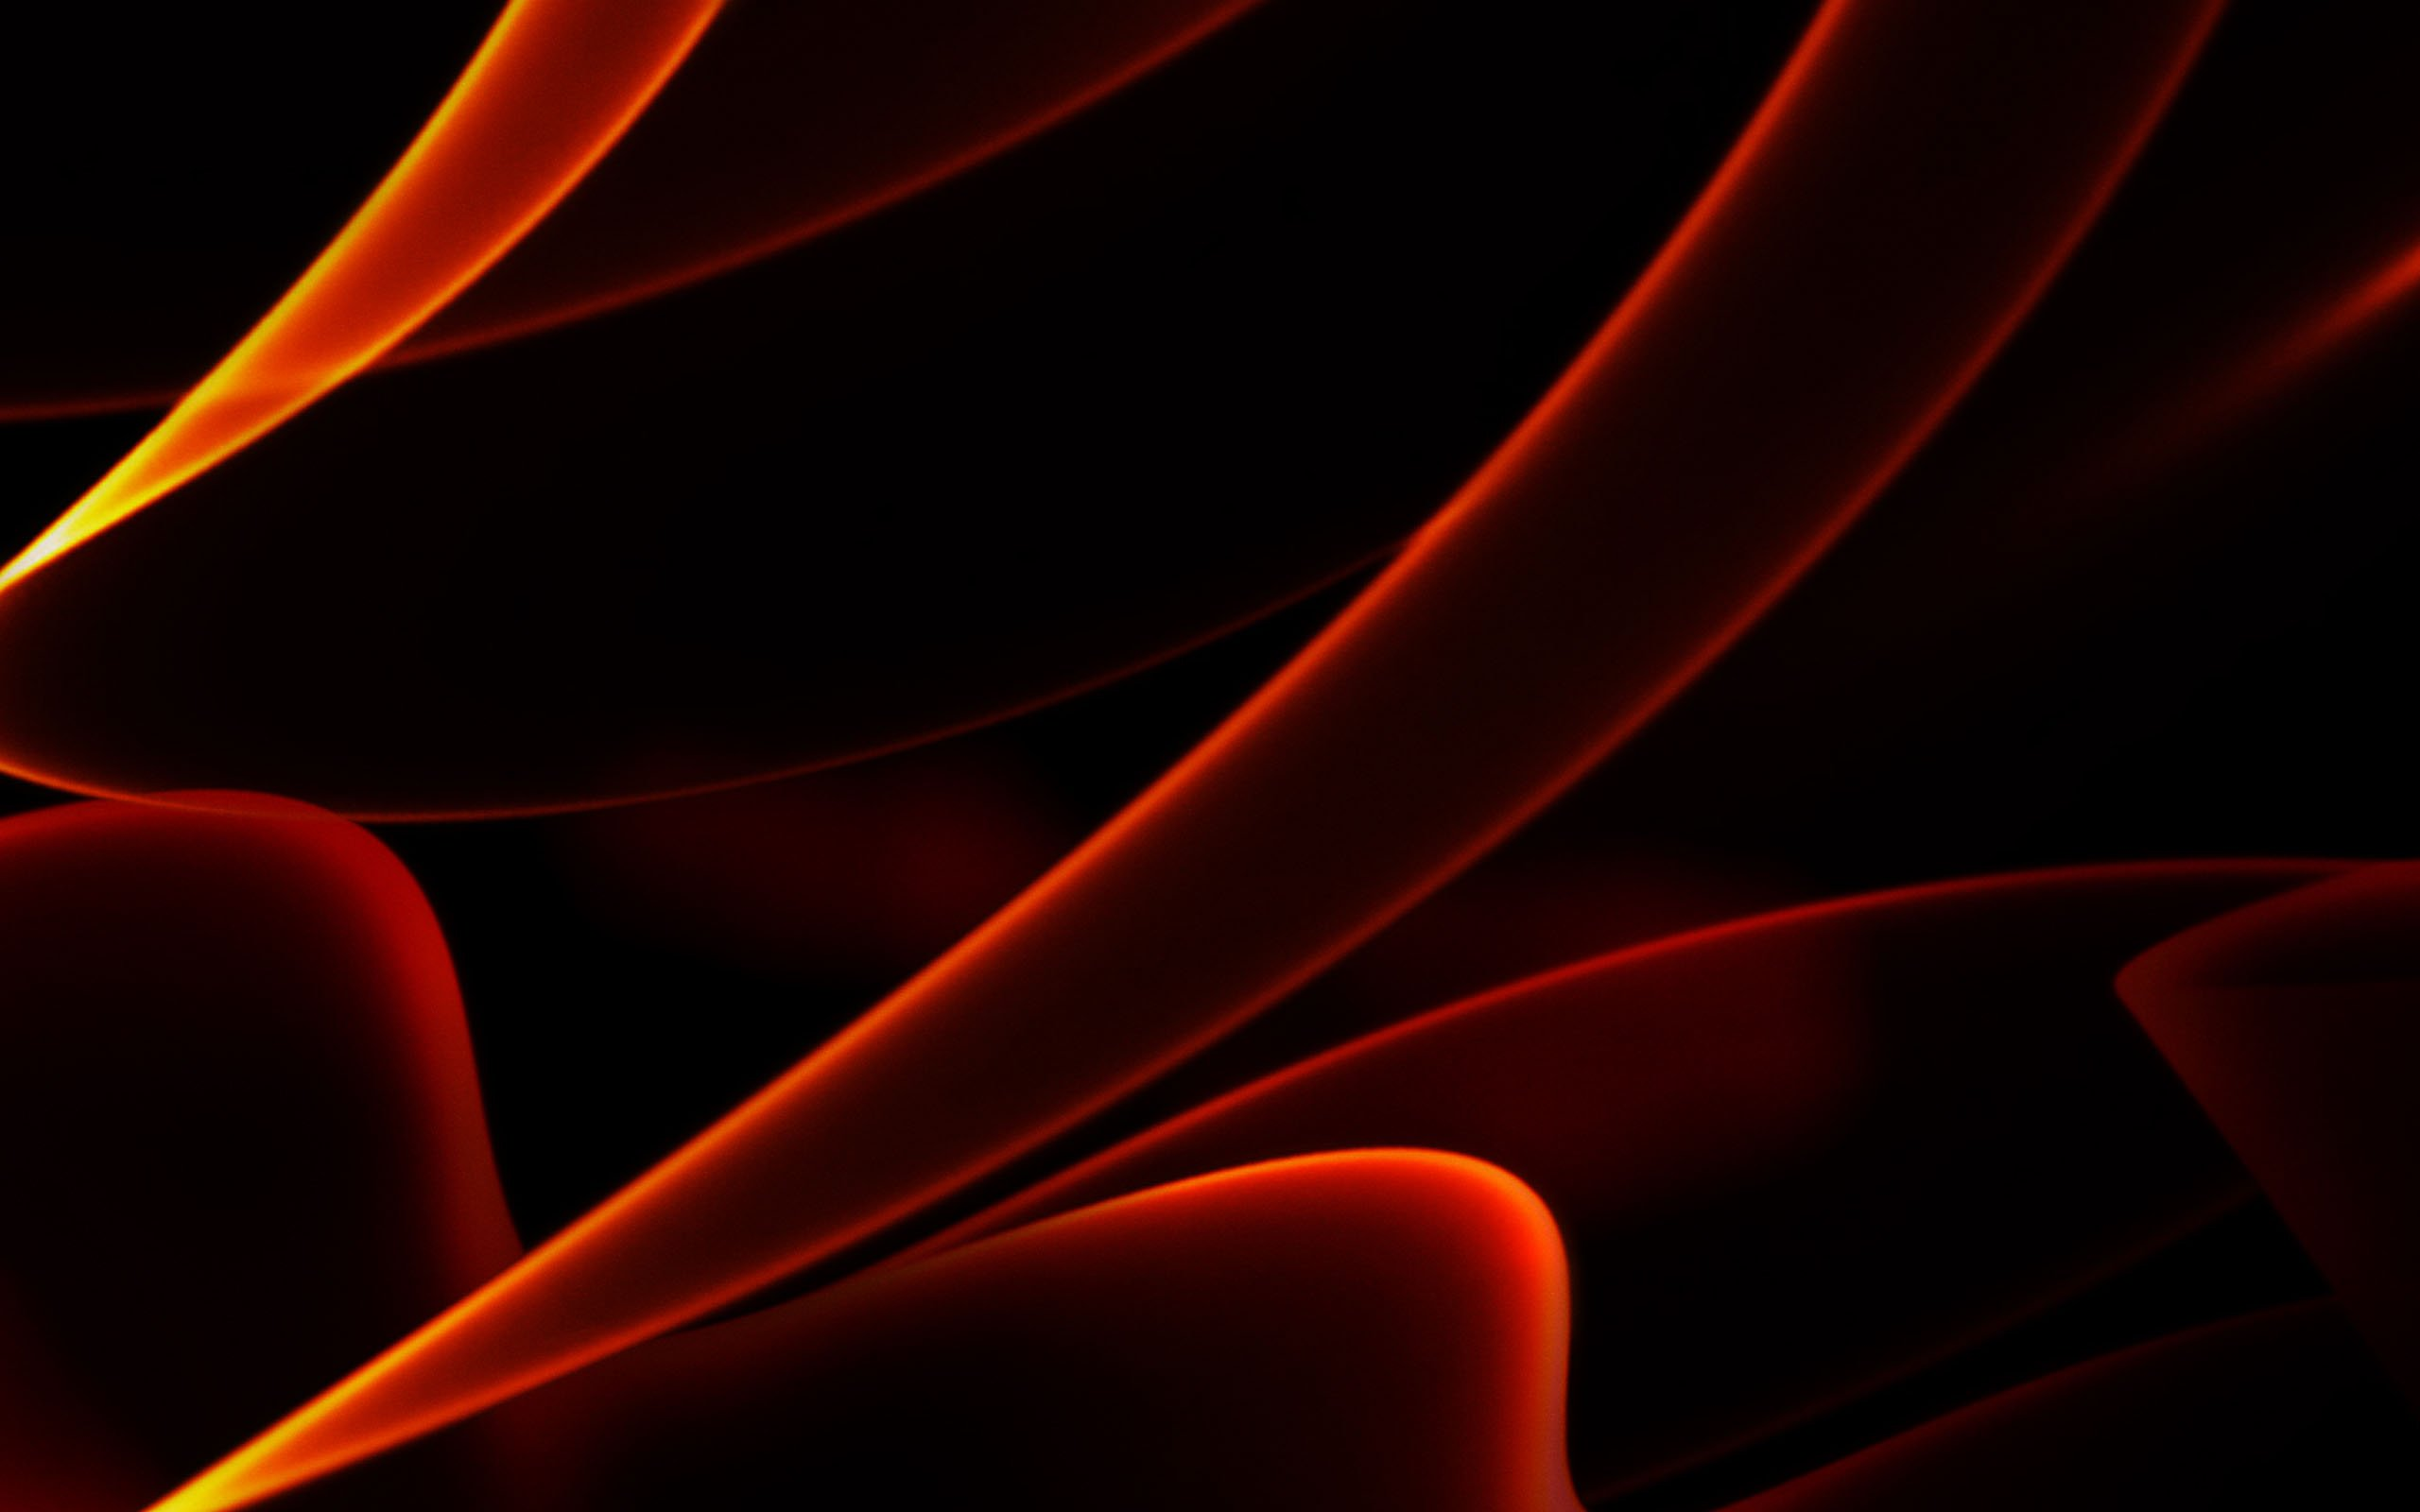 abstract wallpapers 1280x800 abstract wallpapers 1280x800 xpx red 2560x1600